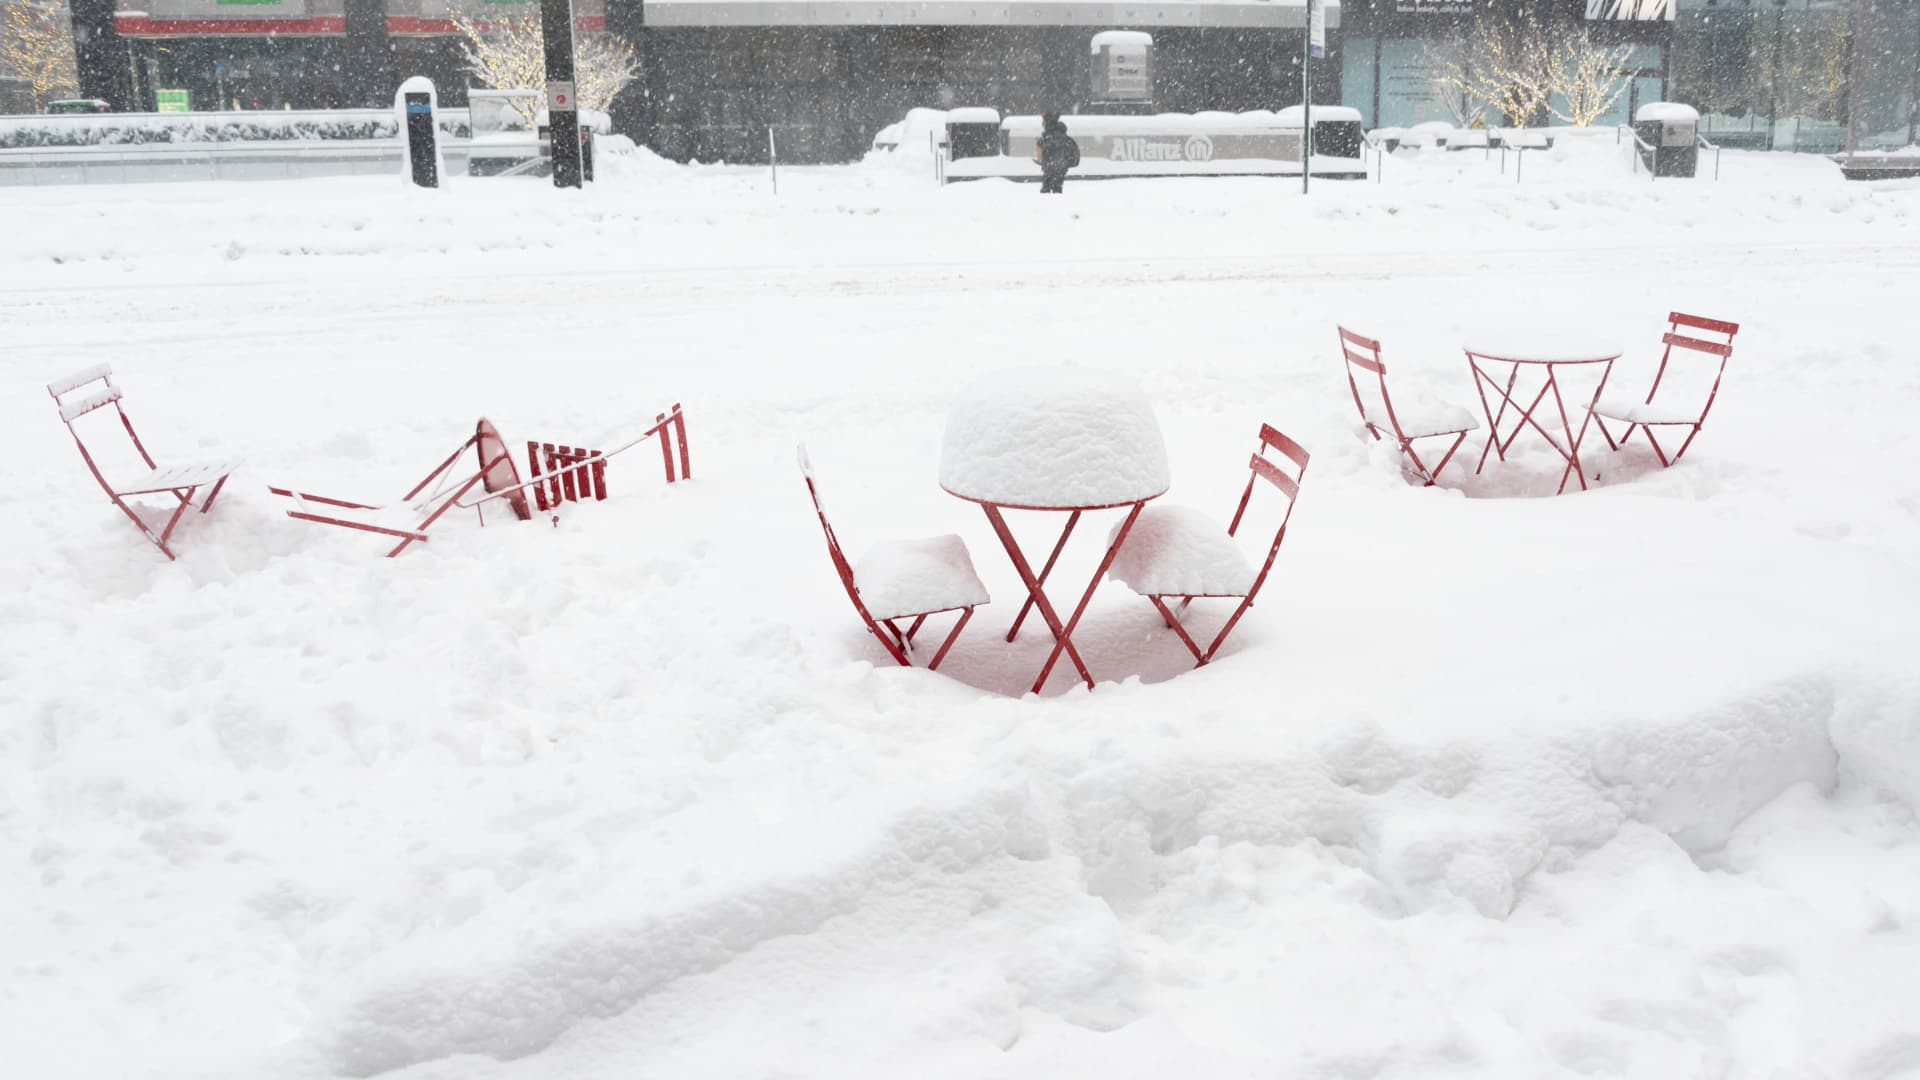 Dining tables are covered in snow outside a restaurant in Times Square during a snow storm on February 1, 2021 in New York City.